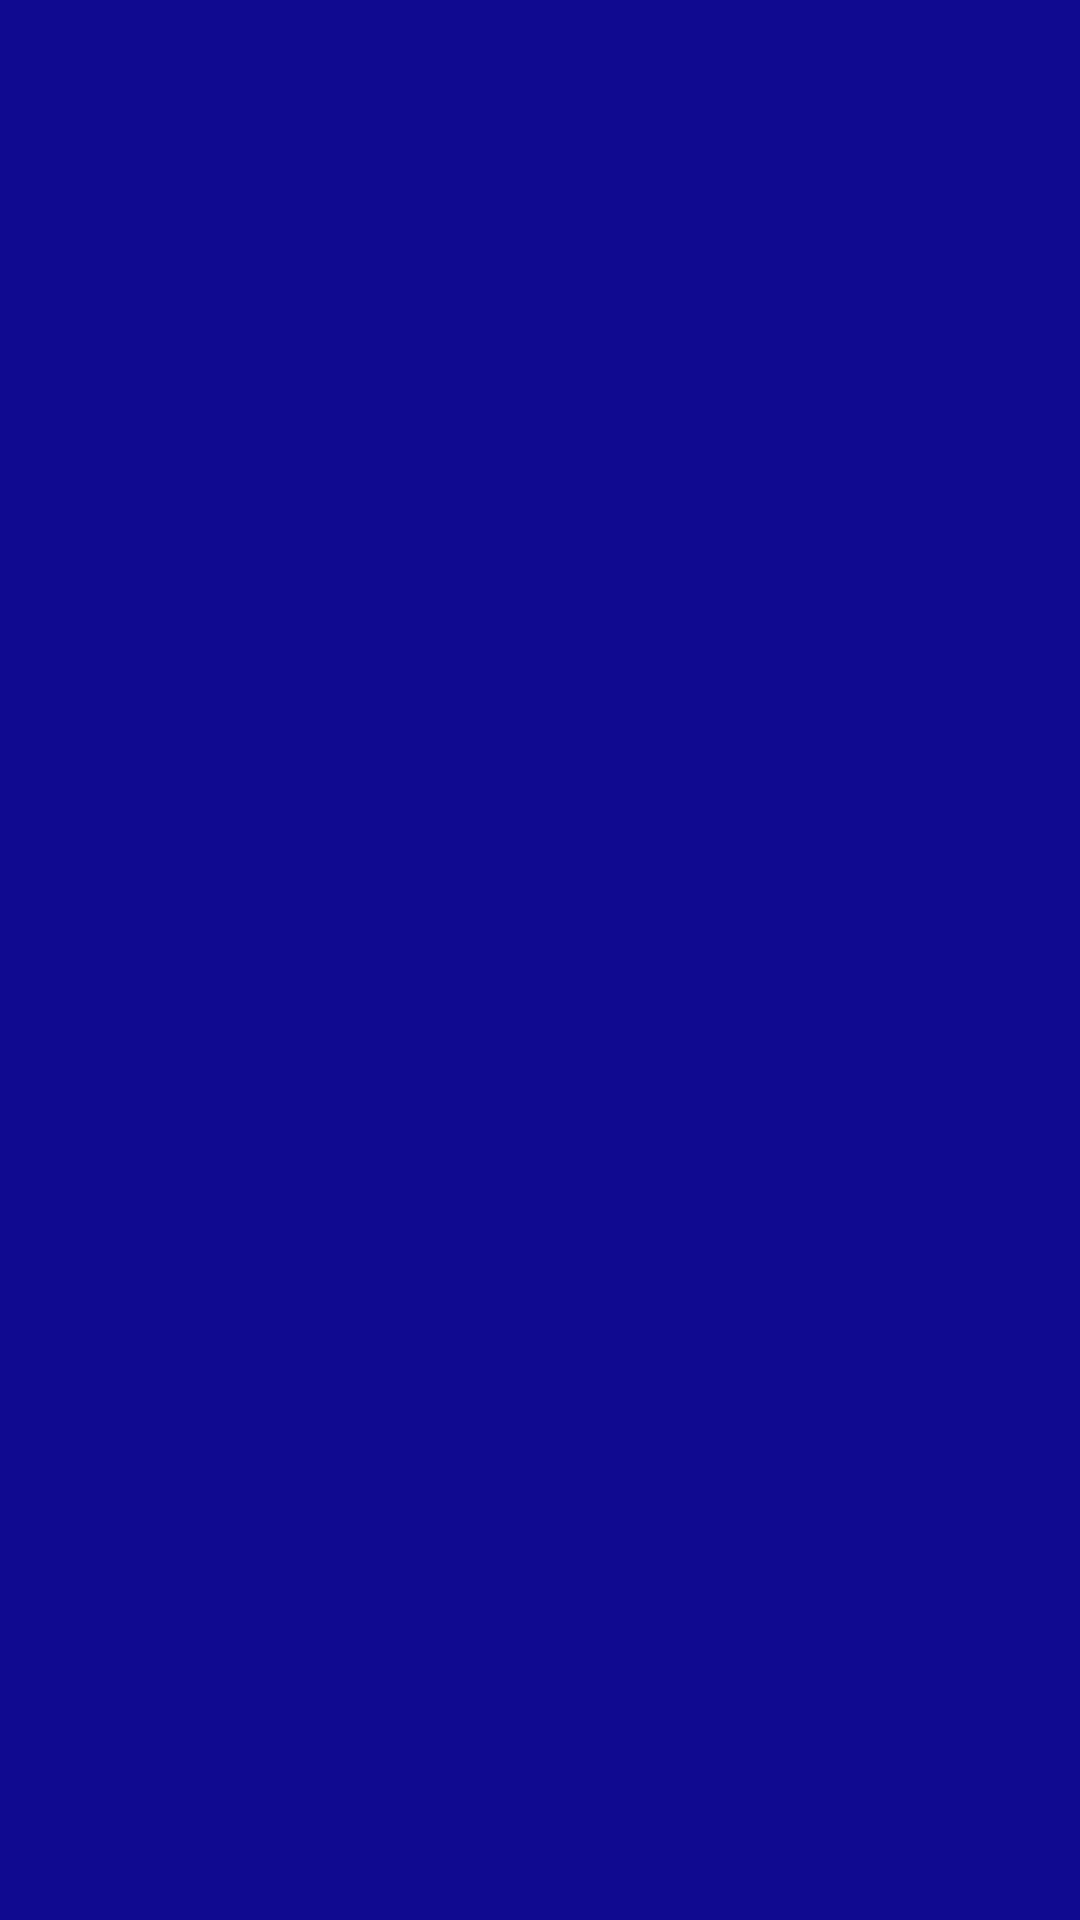 1080x1920 Ultramarine Solid Color Background